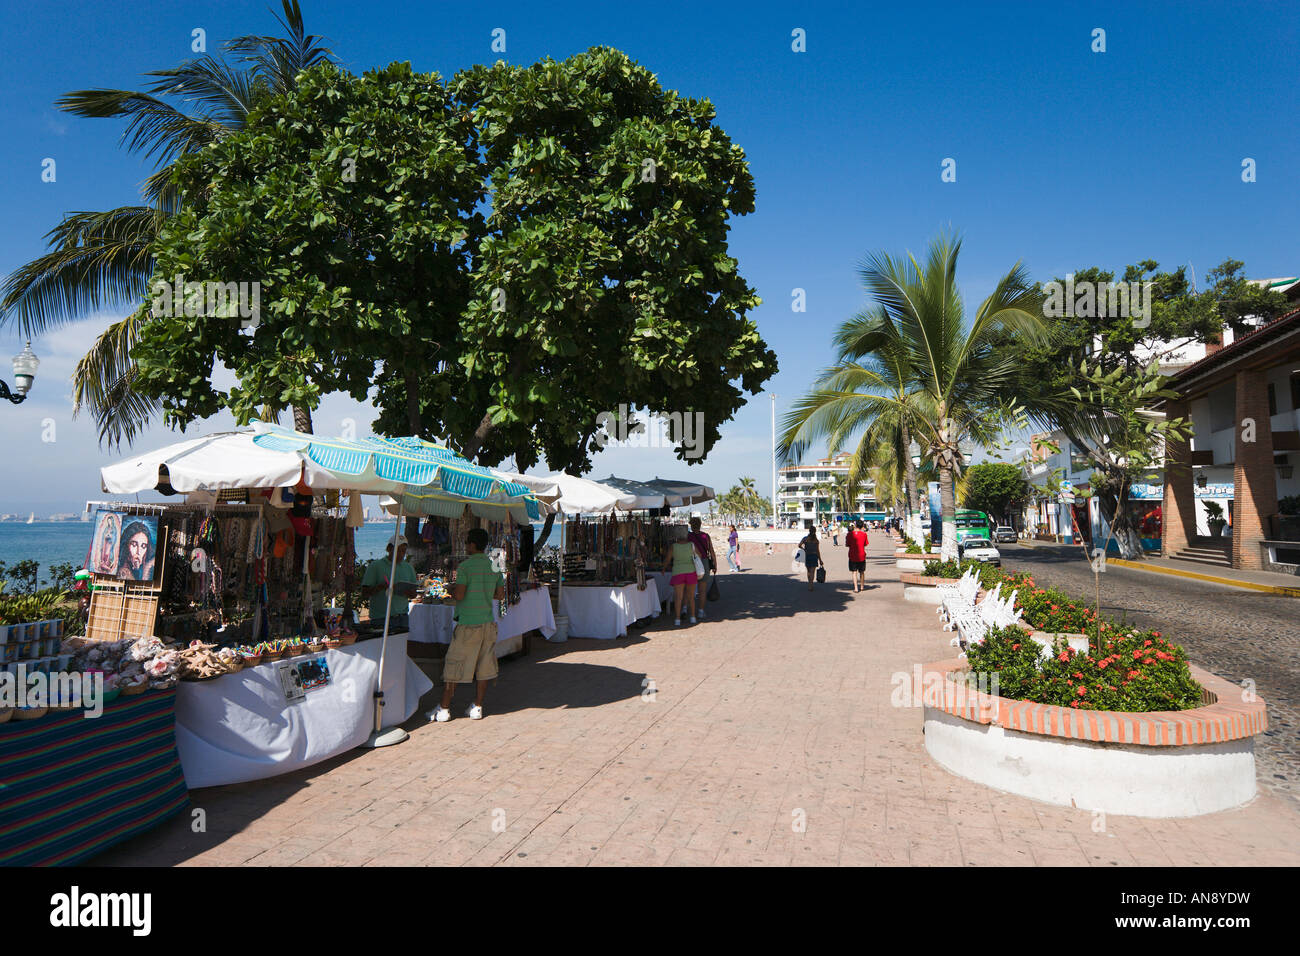 Les étals du marché, front de Malecon, vieille ville, Puerto Vallarta, Jalisco, Mexique Photo Stock